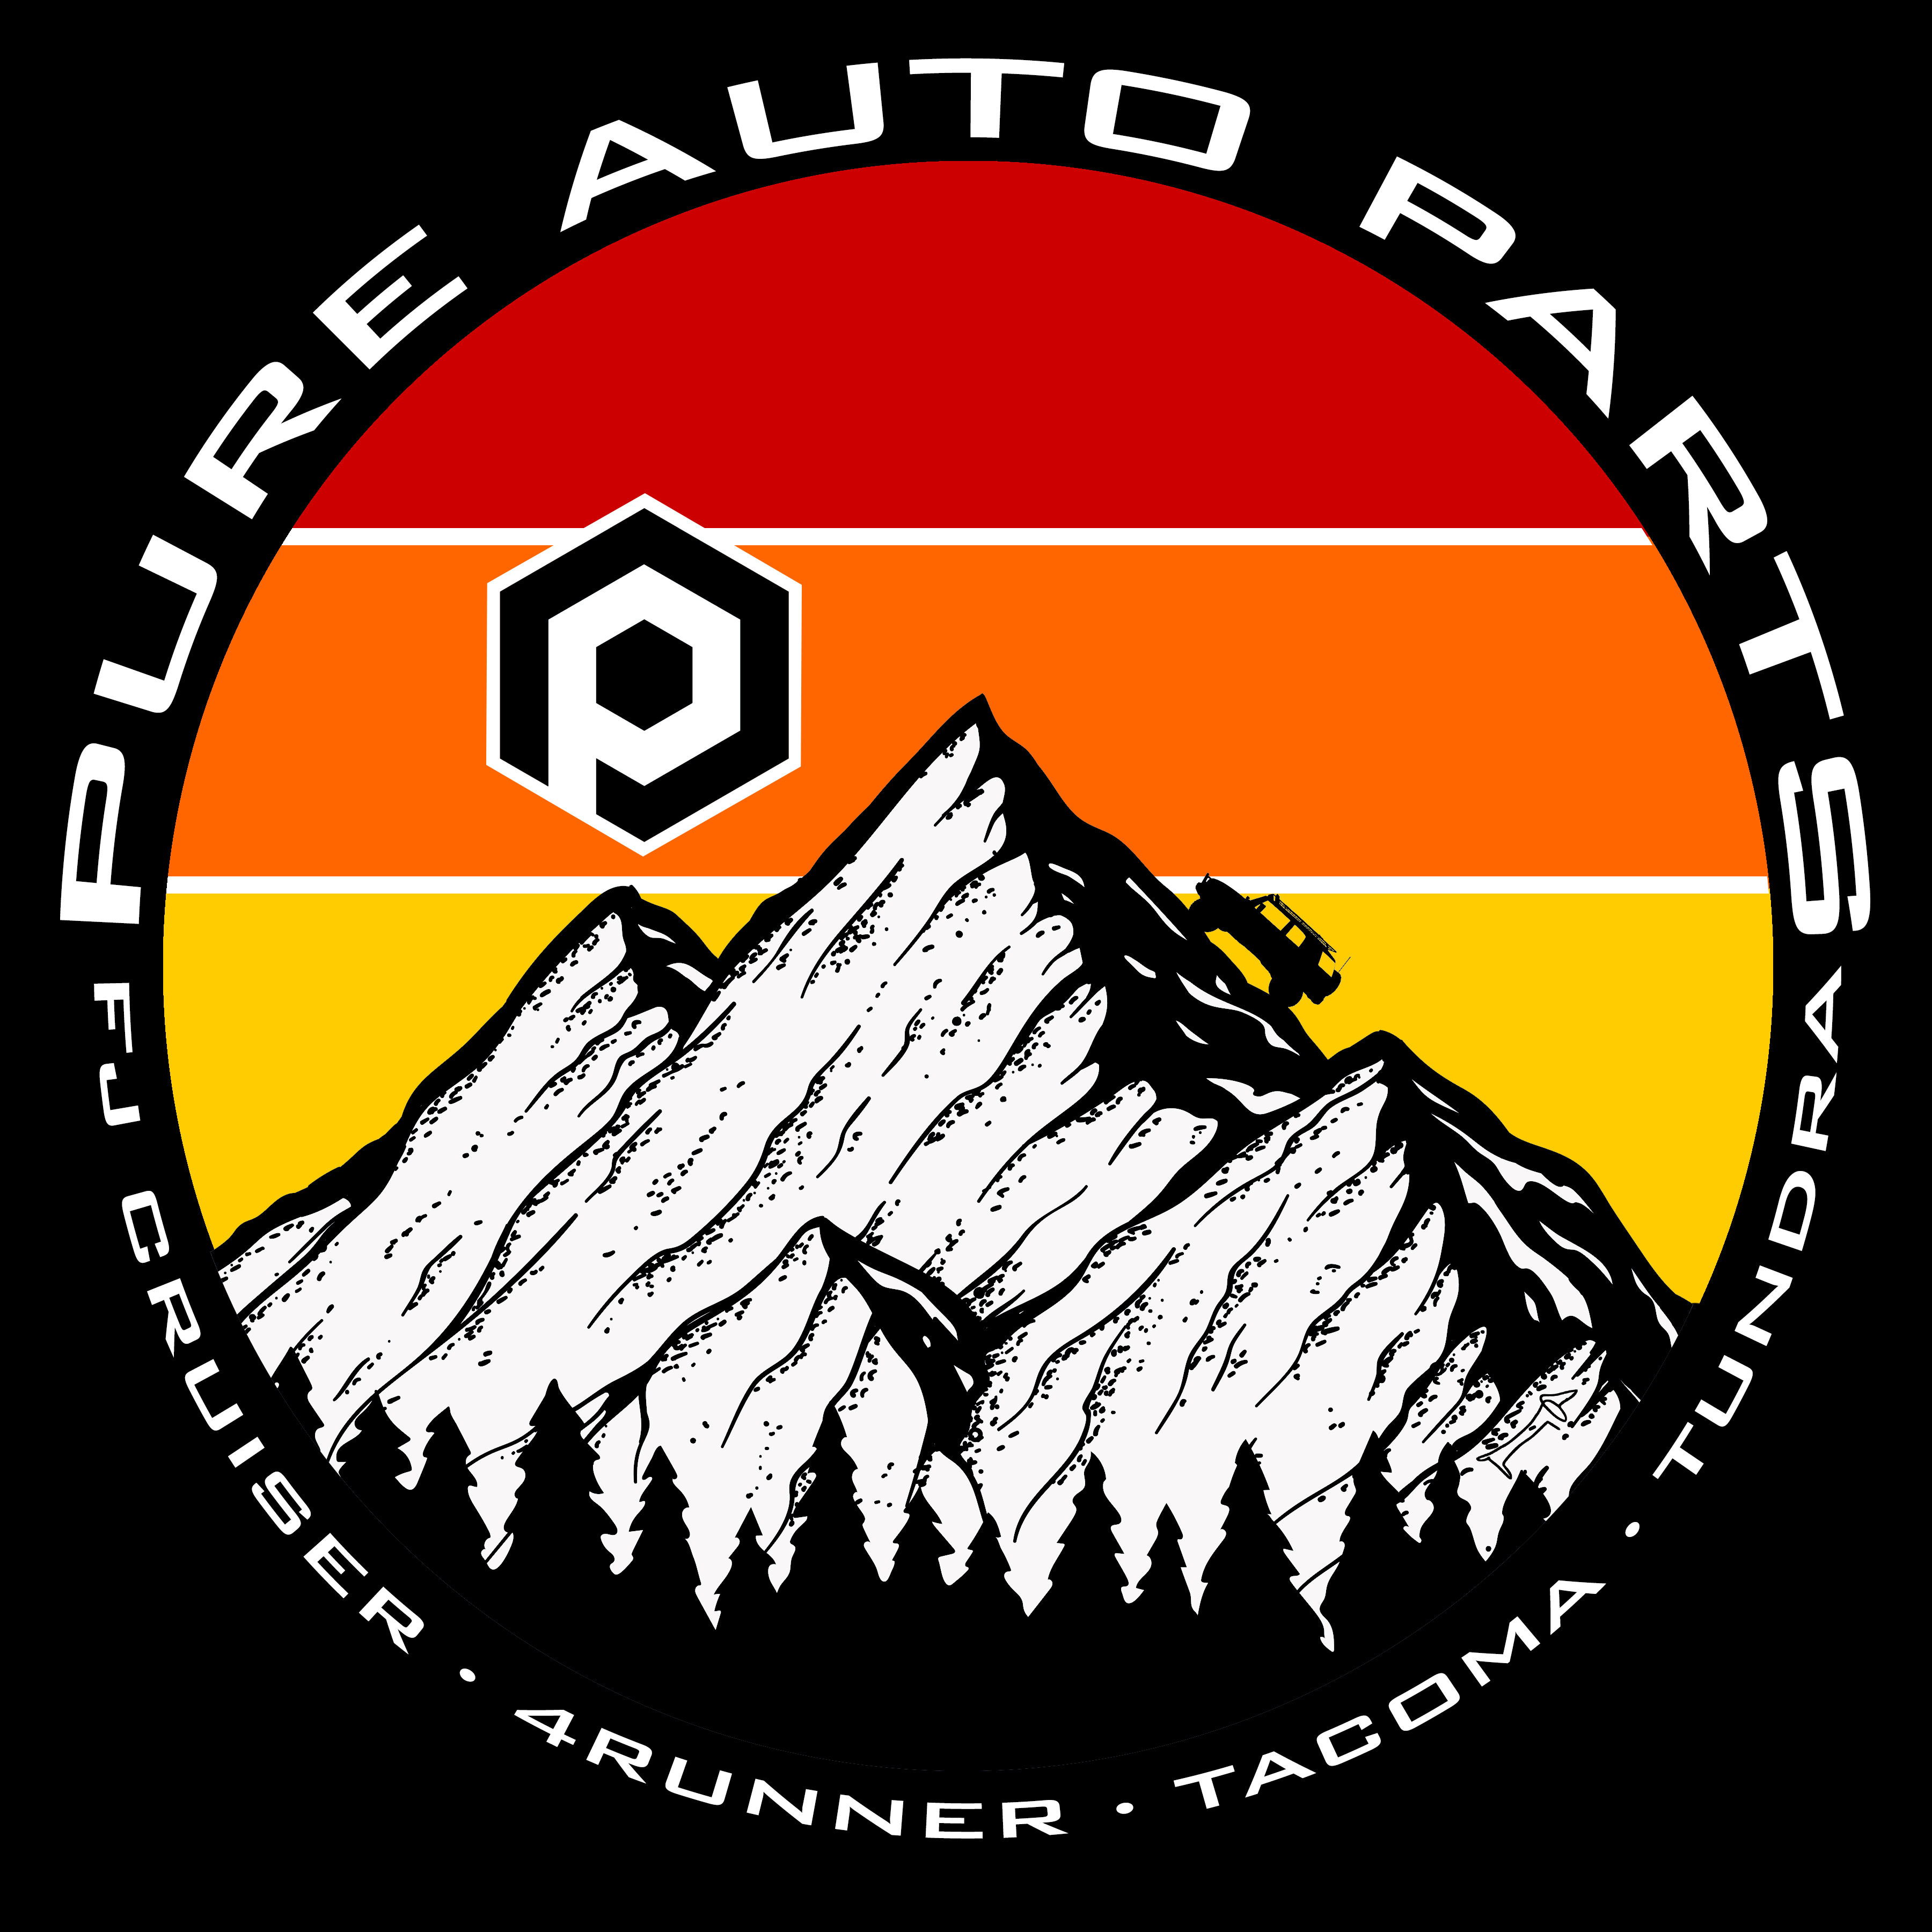 Pure Auto Parts - OverLanding - New T-Shirt for 2019